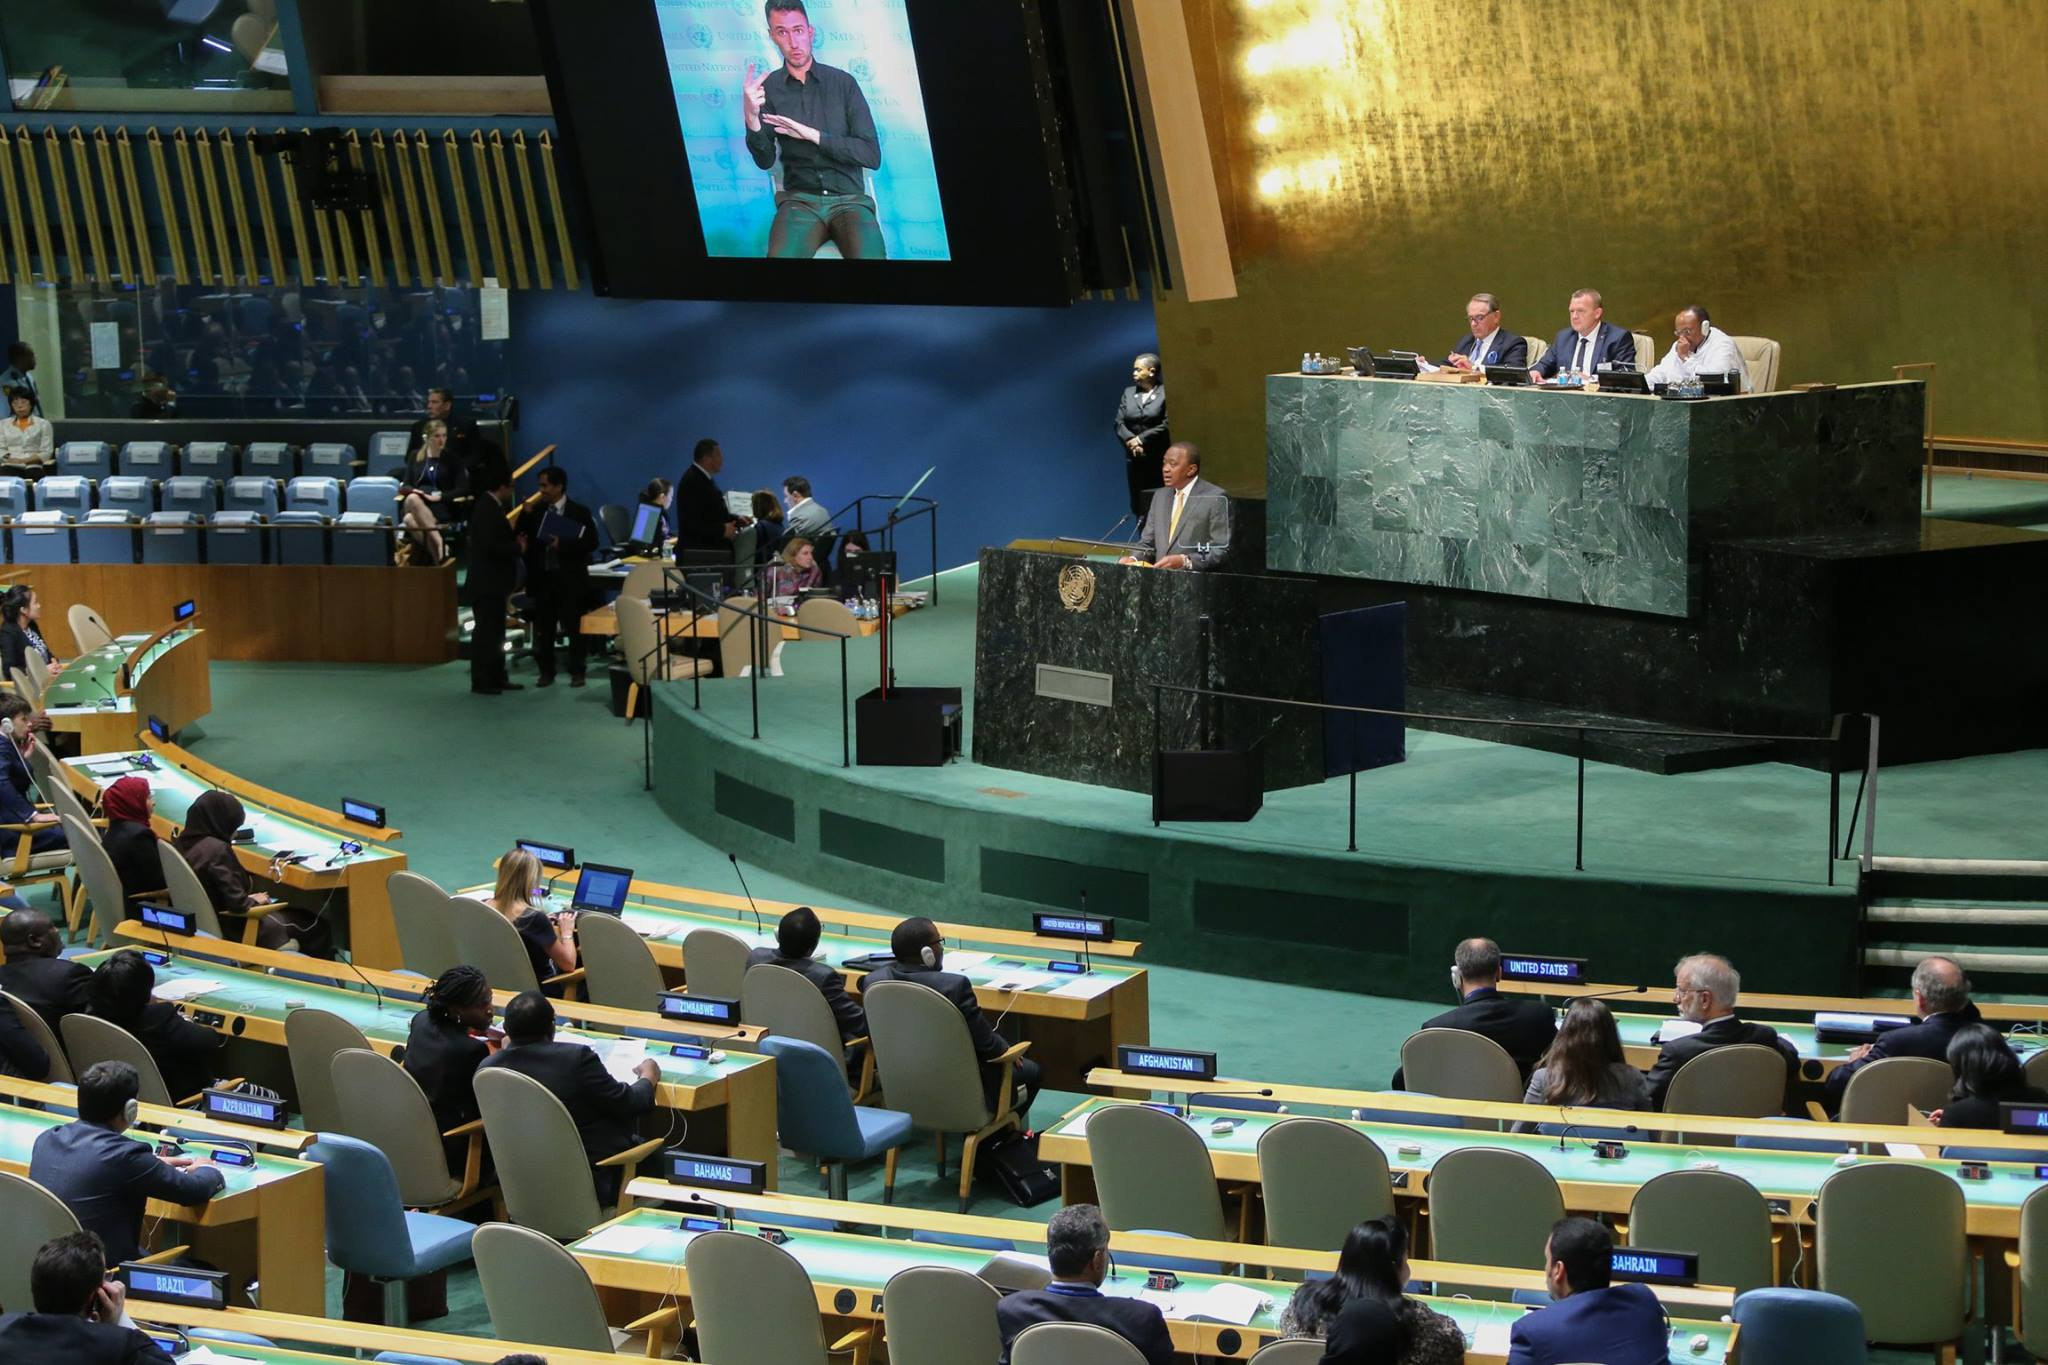 the need for the united nations The countries of the security council are united on the need for final, fully verified denuclearization of north korea, as agreed to by chairman kim strict enforcement of sanctions is critical to our achieving this goal.